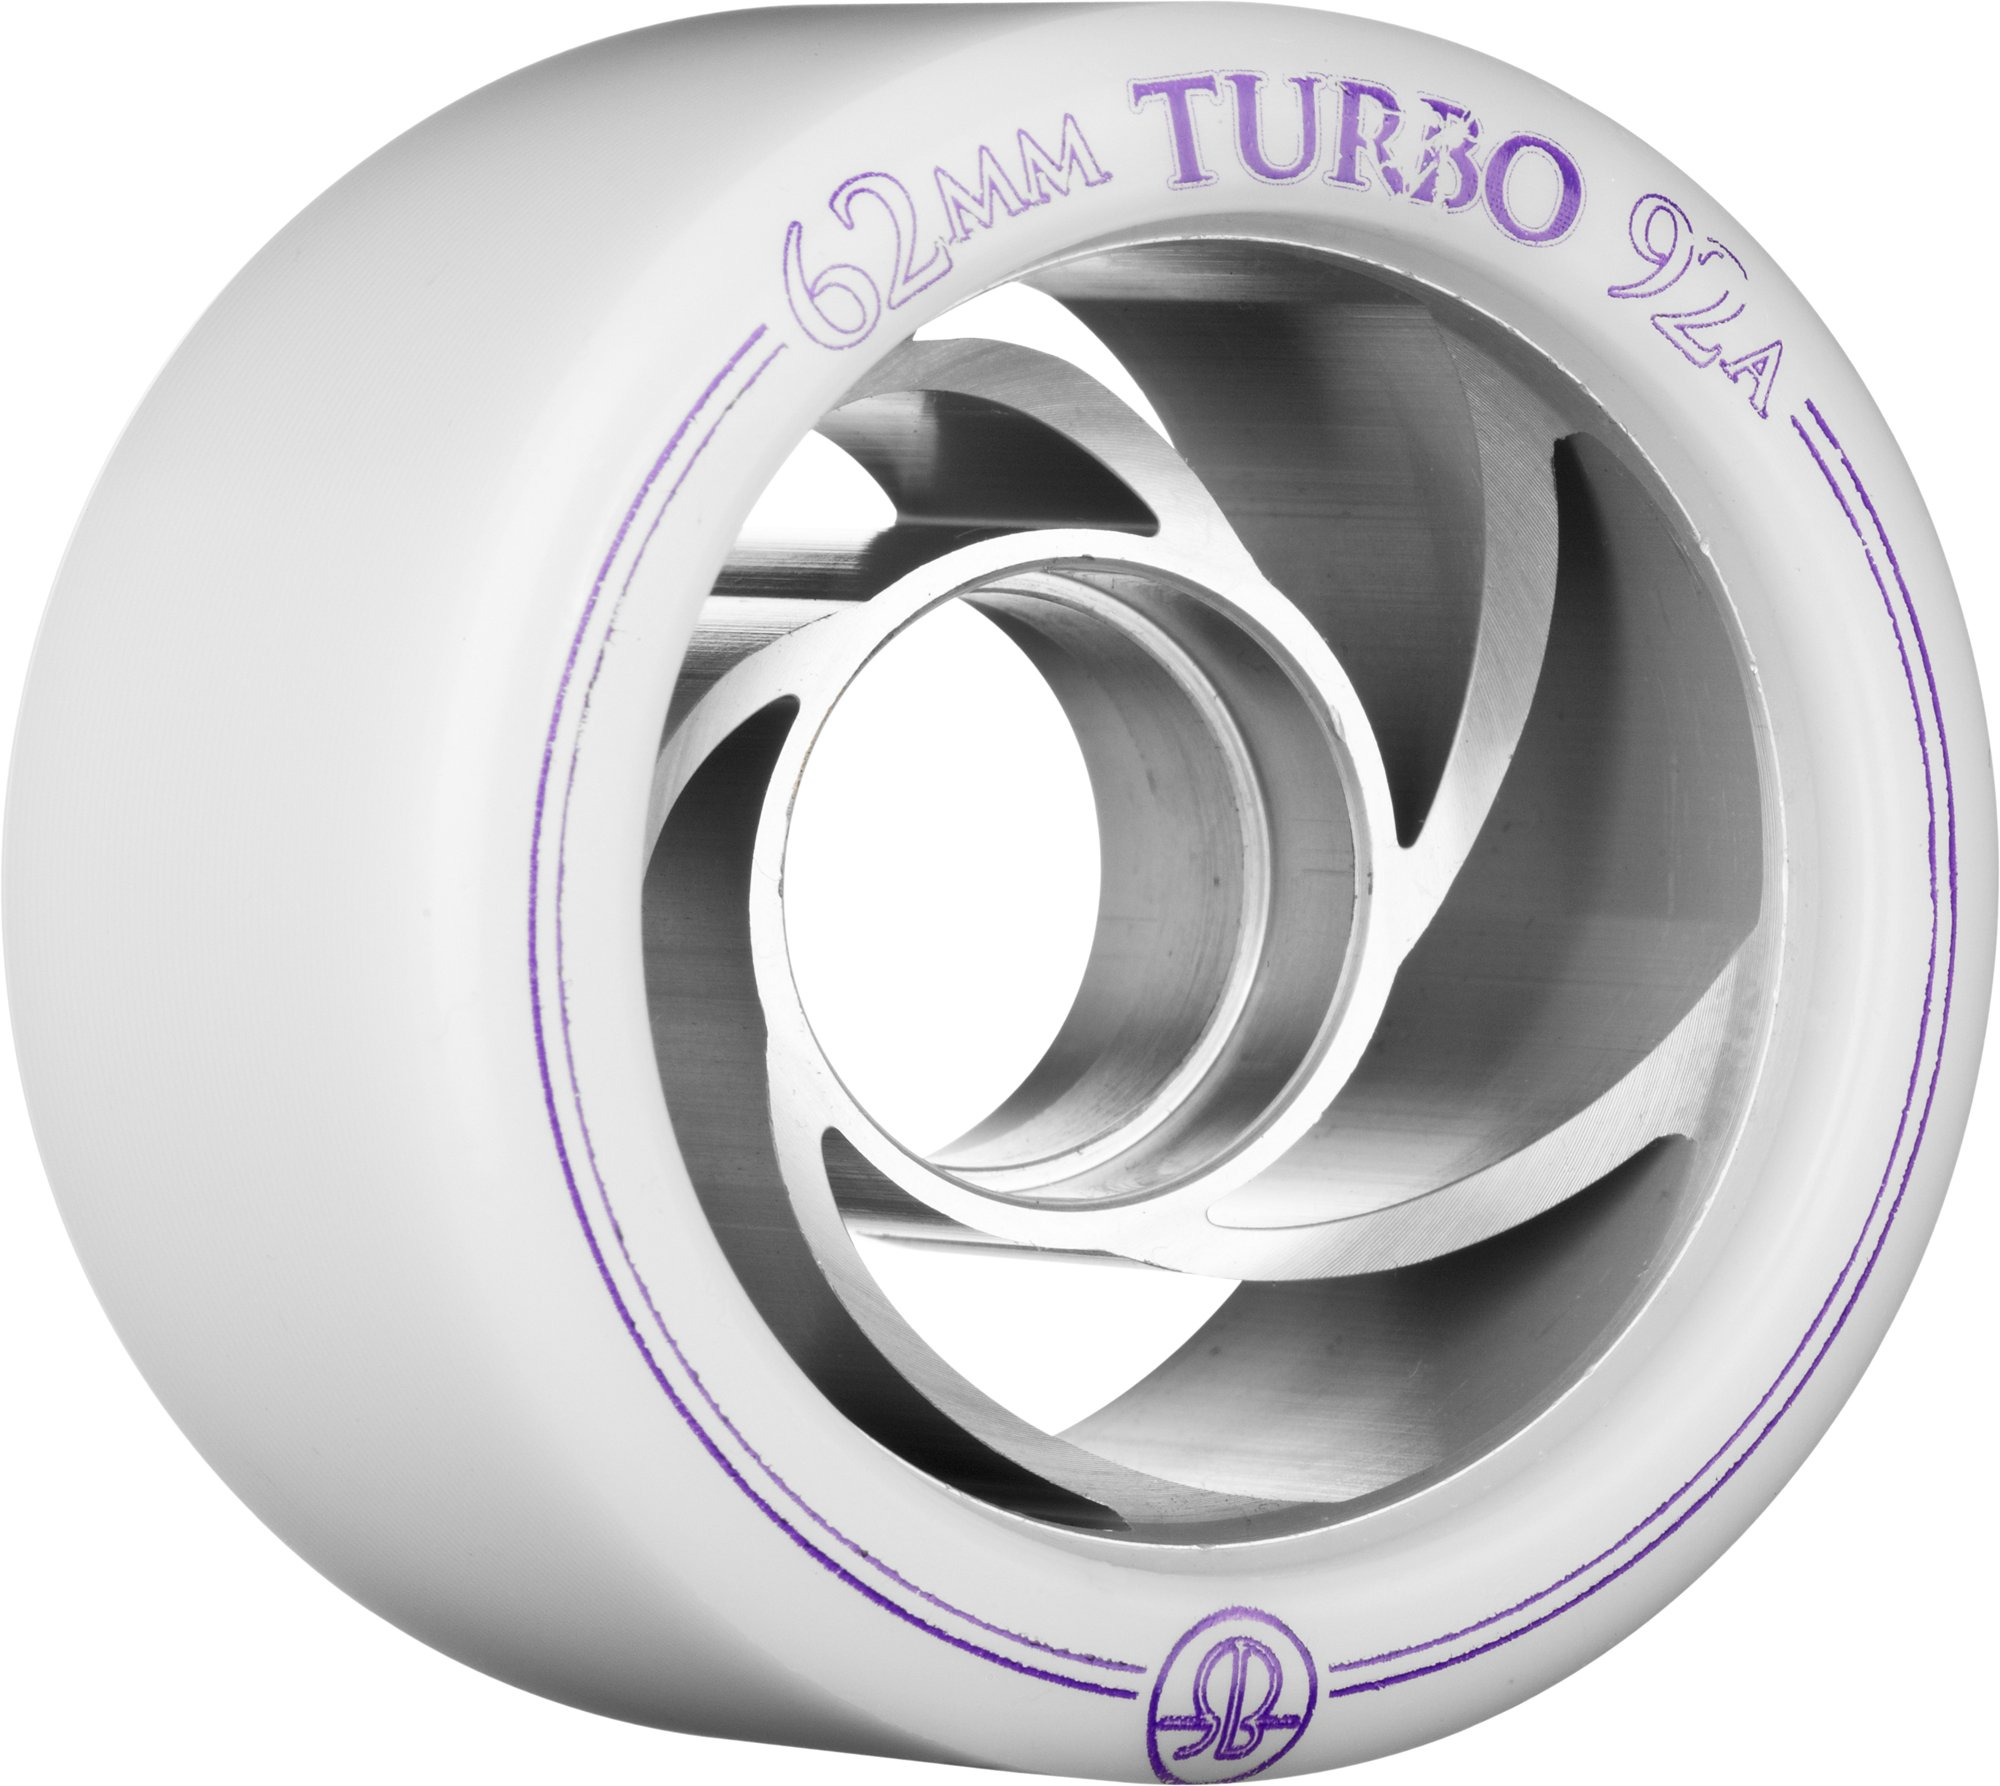 Rollerbones Turbo 92A Speed/Derby Wheels with an Aluminum Hub (Set of 8), 62mm, White